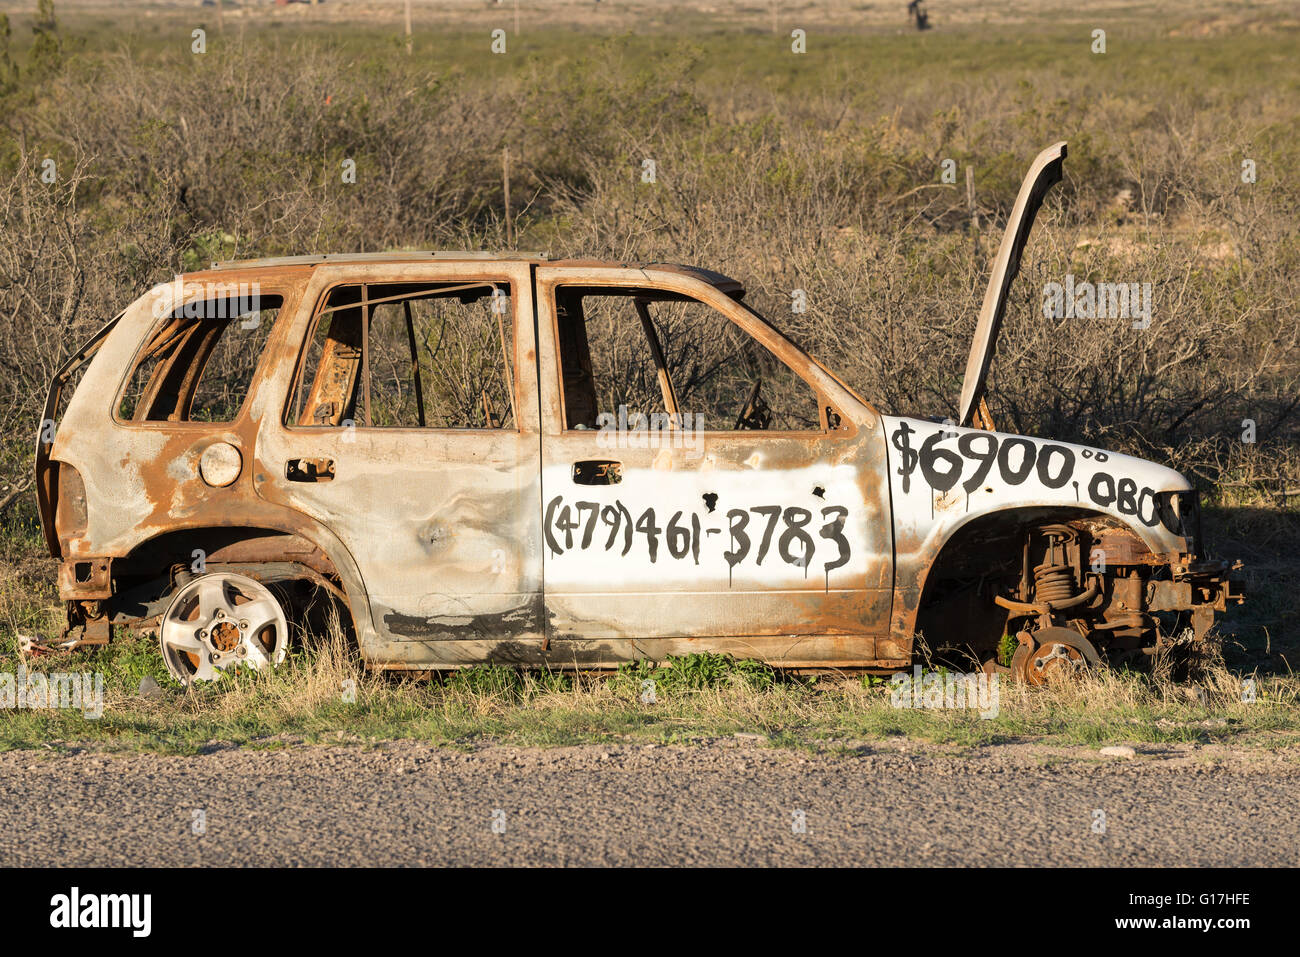 Humorous For Sale Sign Painted On Abandoned Car On The Side Of Road In West  Texas  Free For Sale Signs For Cars